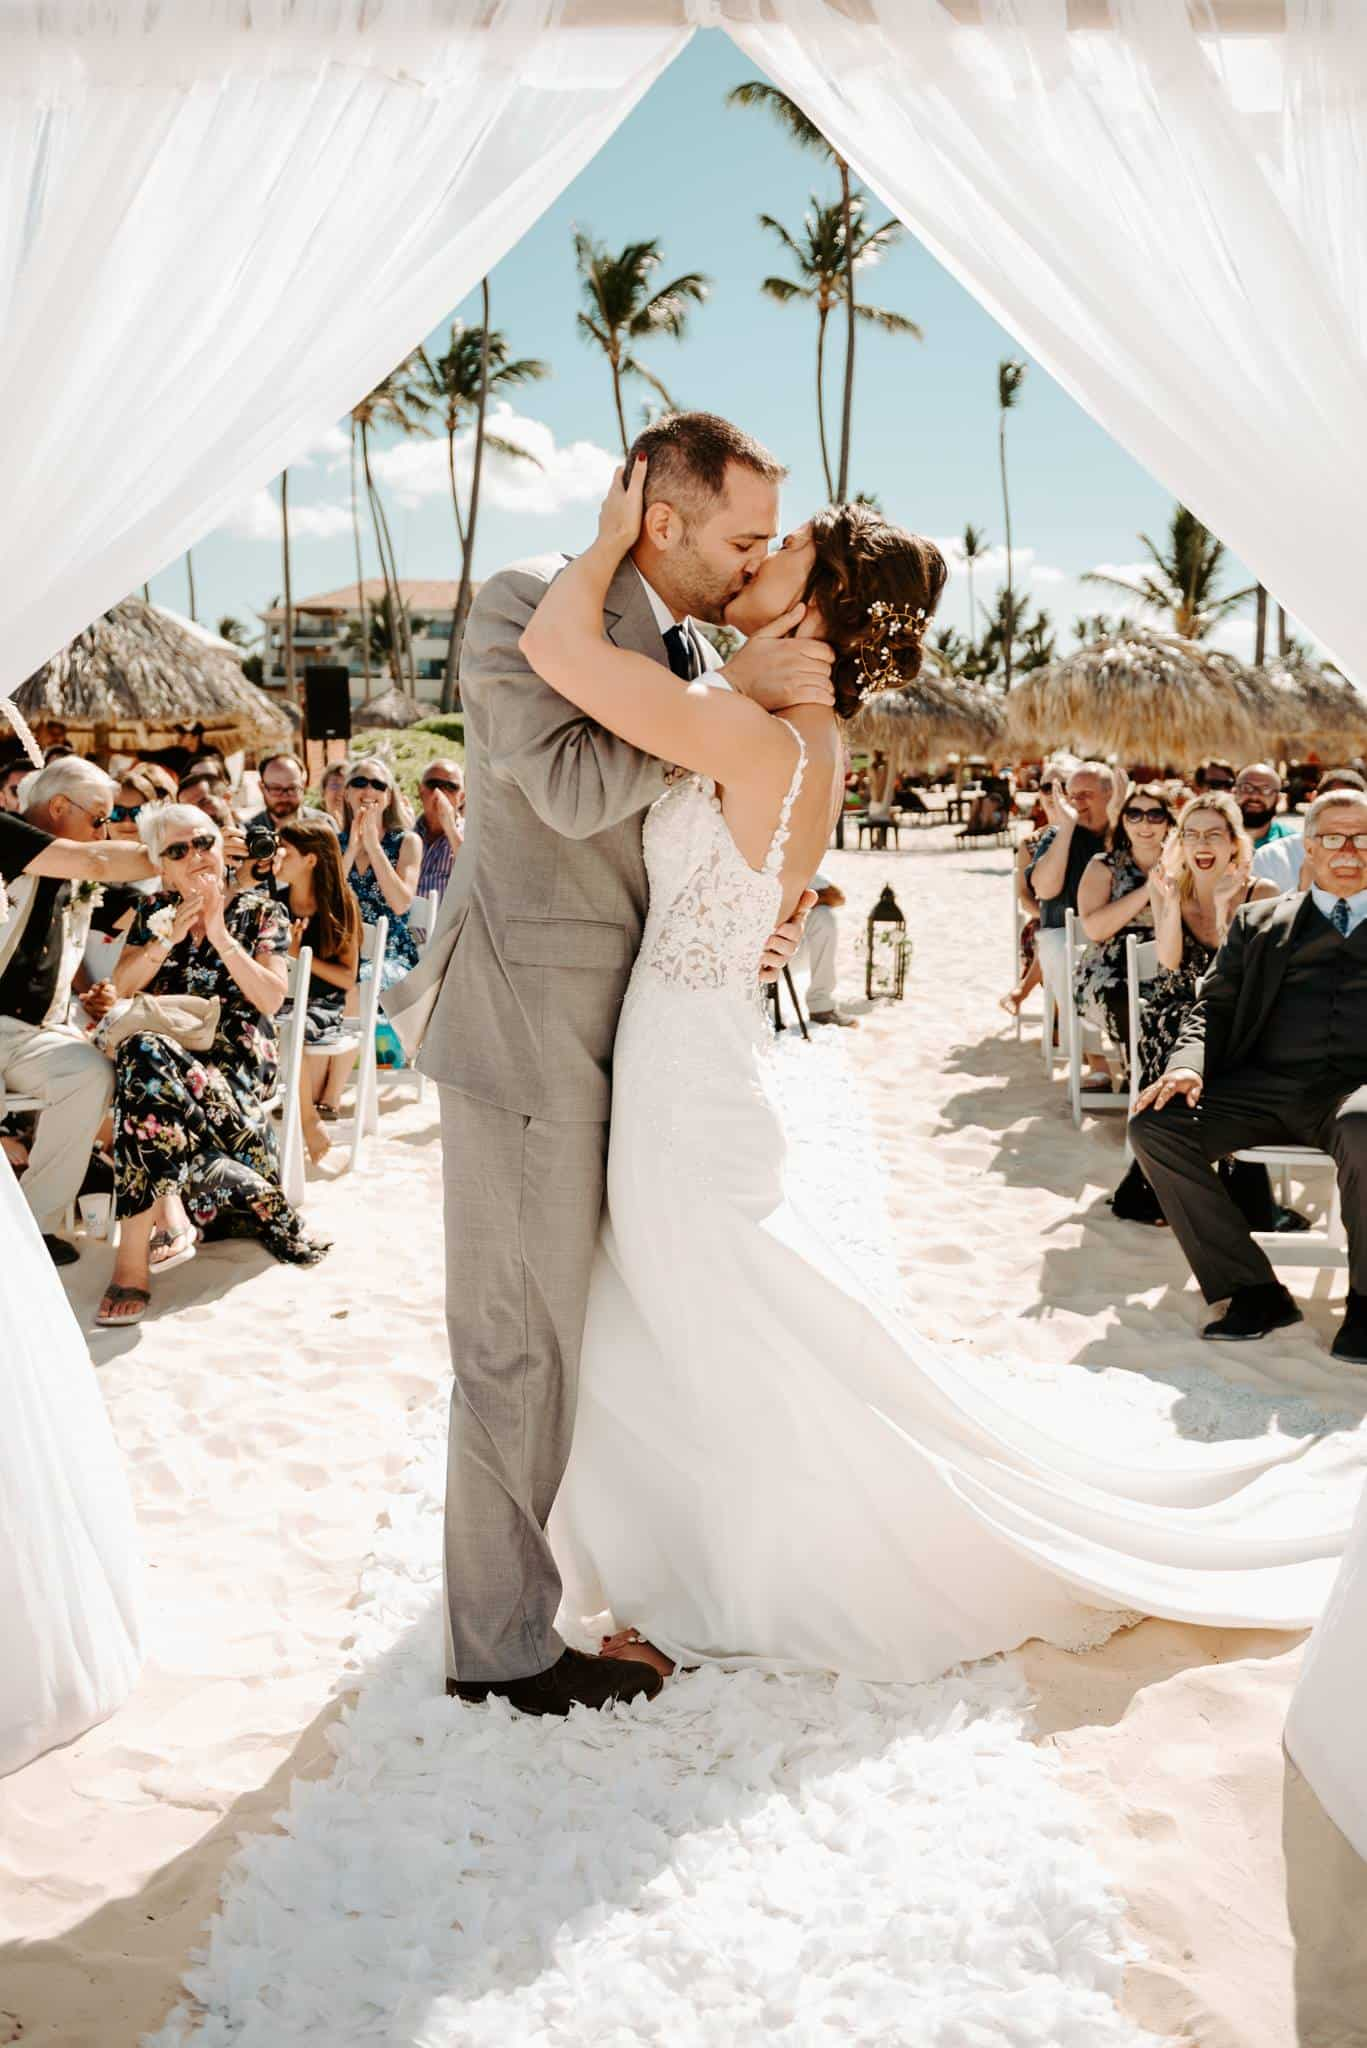 76 Wedding Moments That Will Leave You Speechless